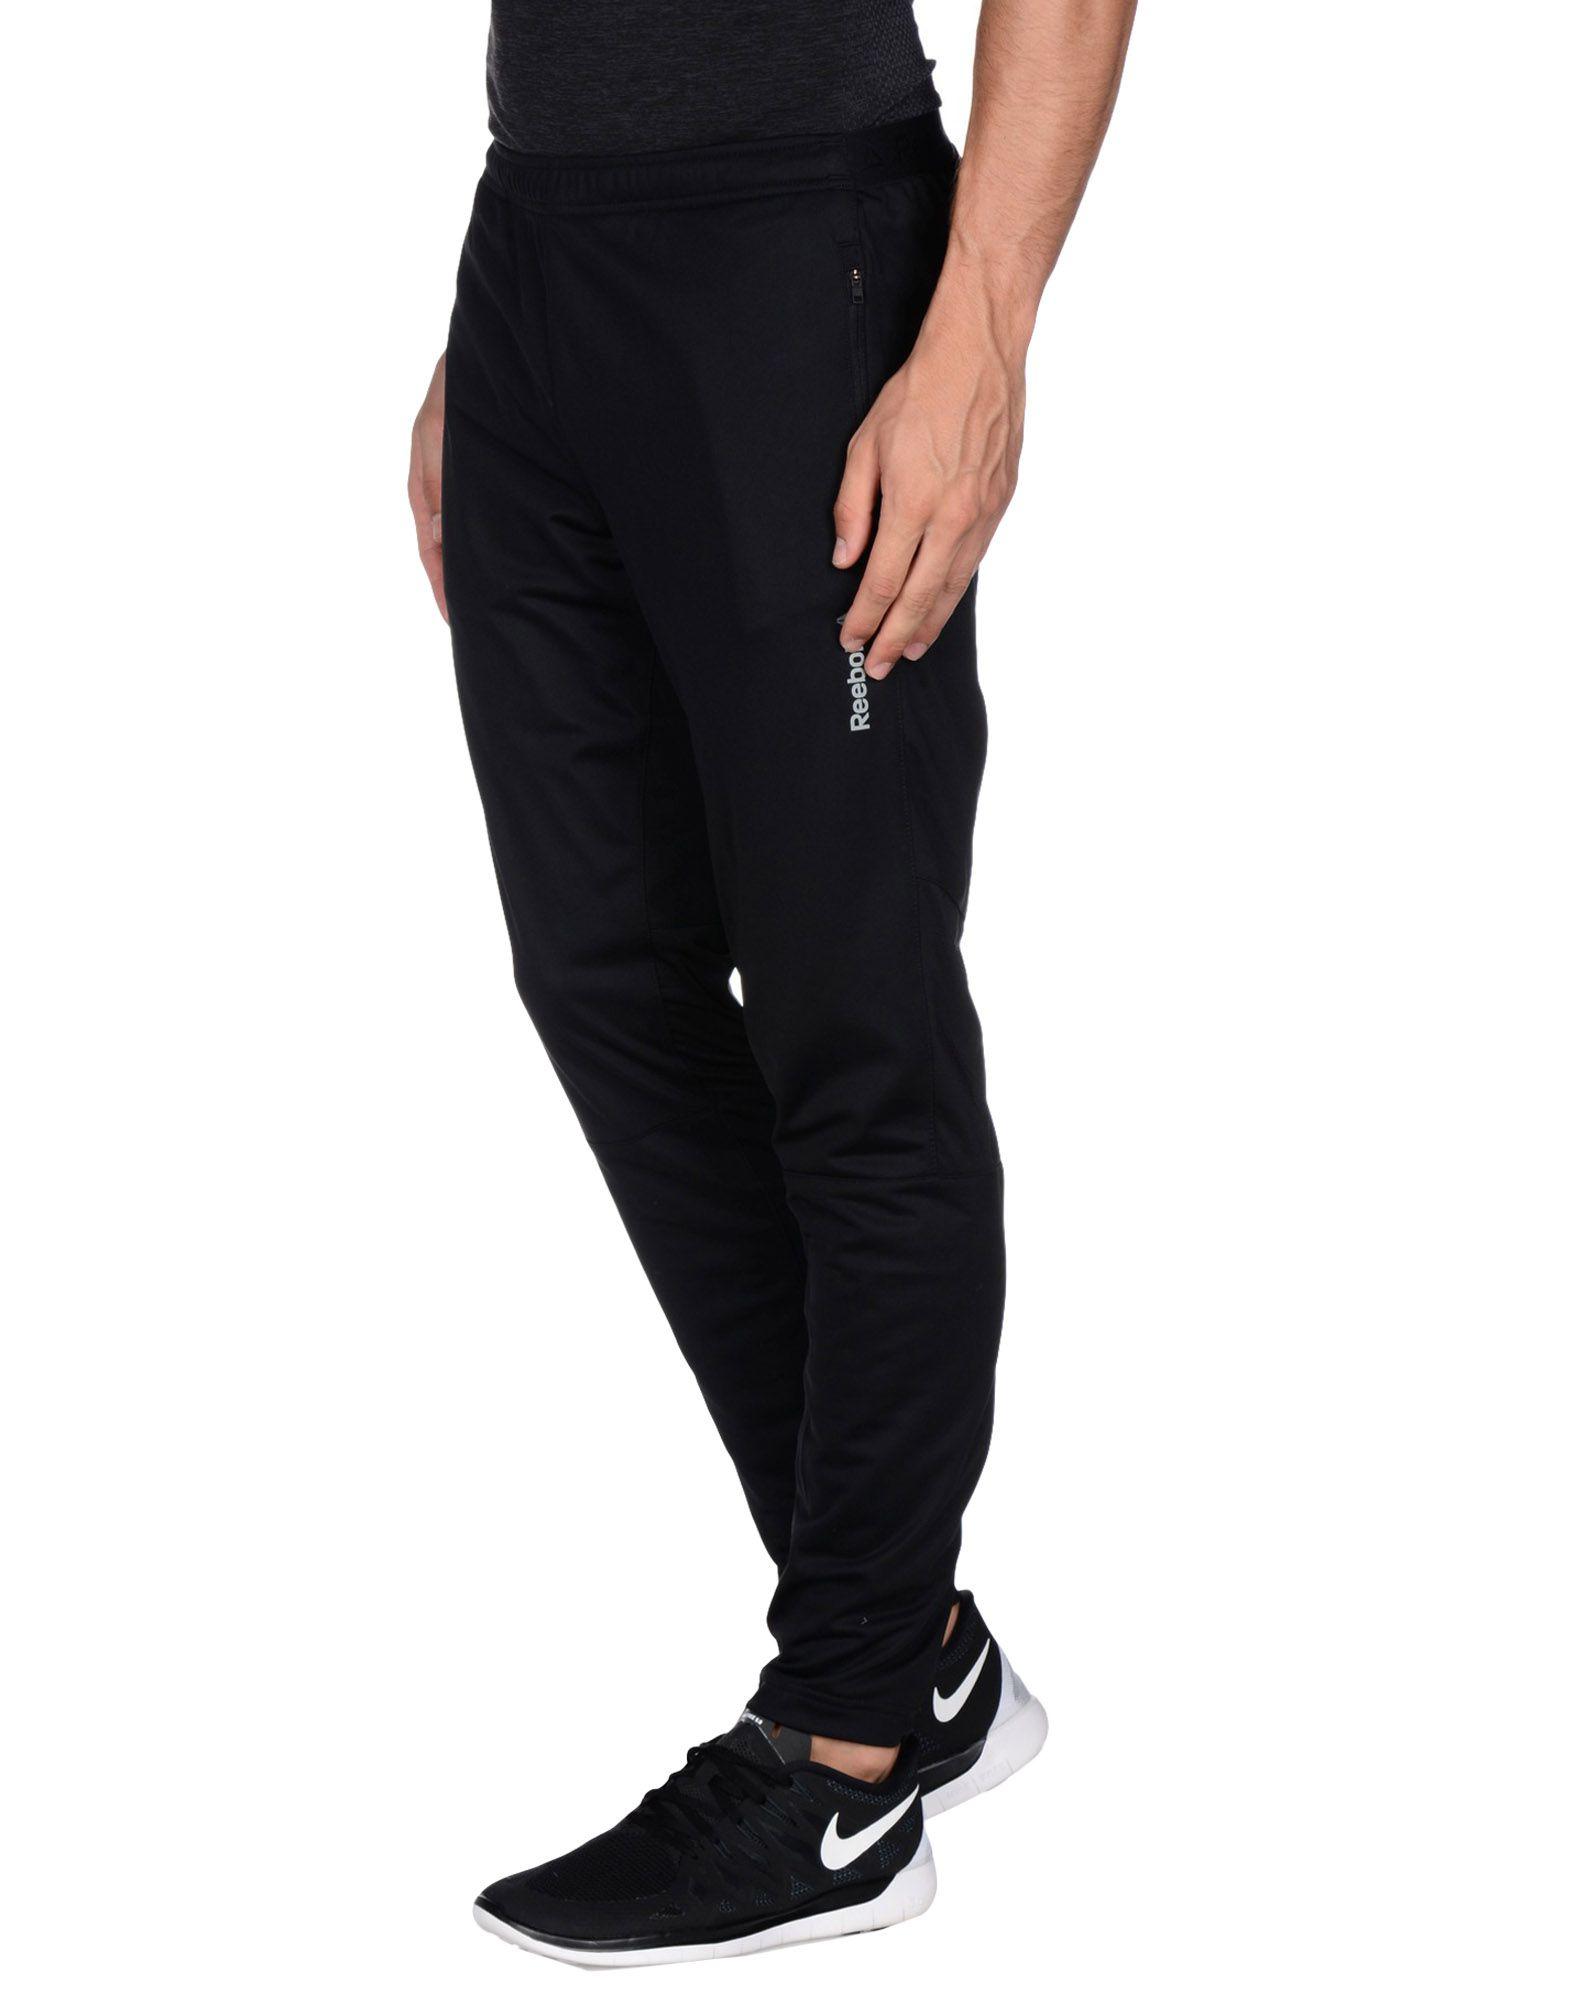 TROUSERS - Casual trousers Reebok Clearance Best Store To Get d3cn2F4